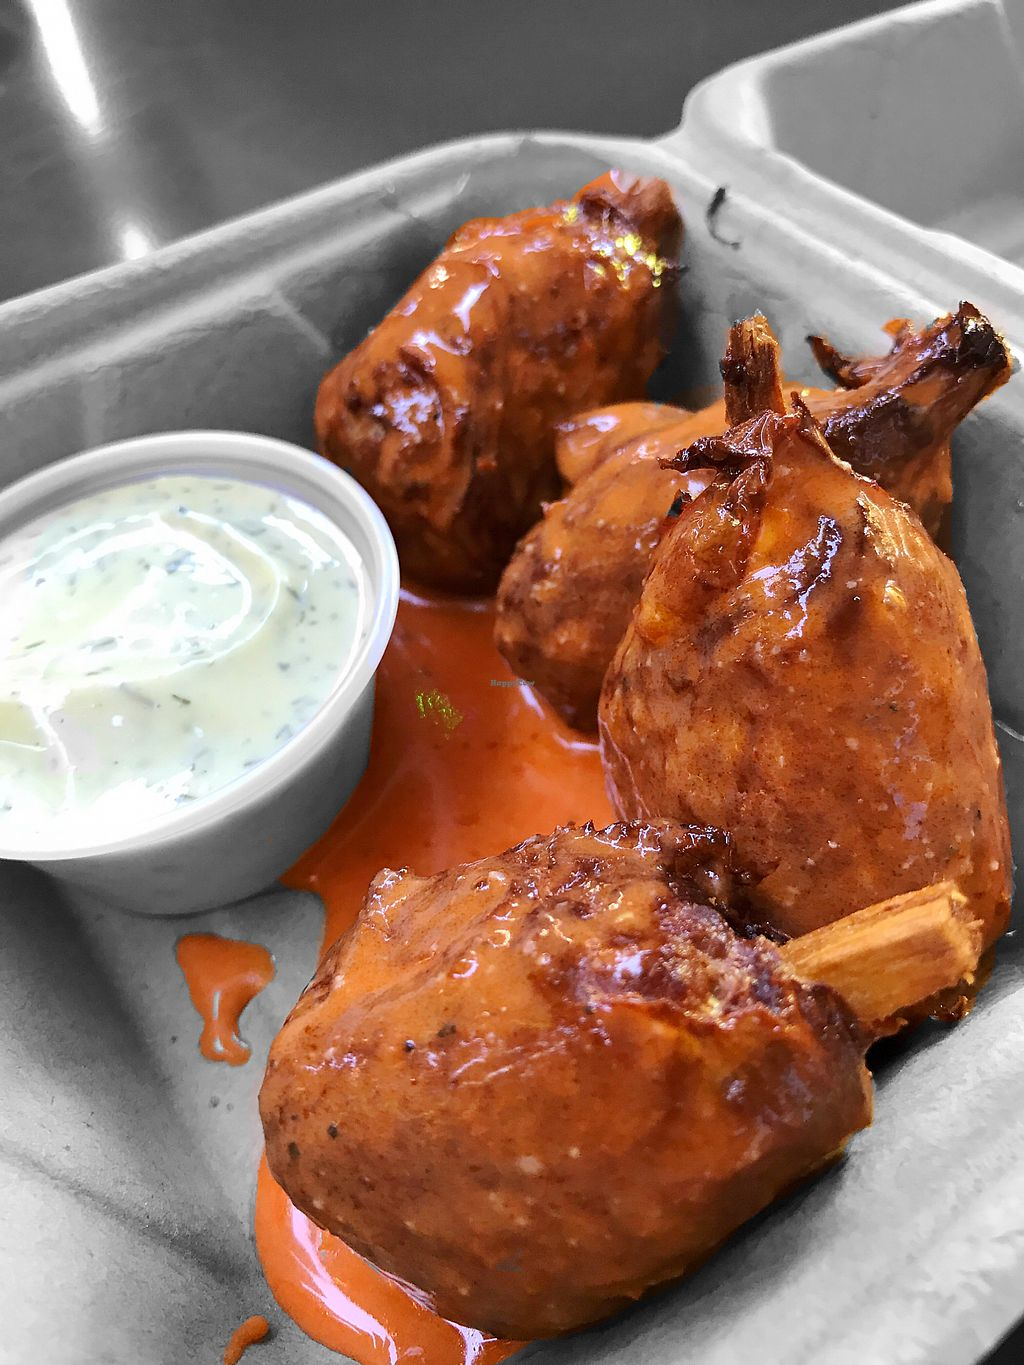 "Photo of Fatsquatch PDX - Food Cart  by <a href=""/members/profile/Vegaholics"">Vegaholics</a> <br/>Smoked garlic buffalo wings are delicious  <br/> July 9, 2017  - <a href='/contact/abuse/image/87094/278284'>Report</a>"